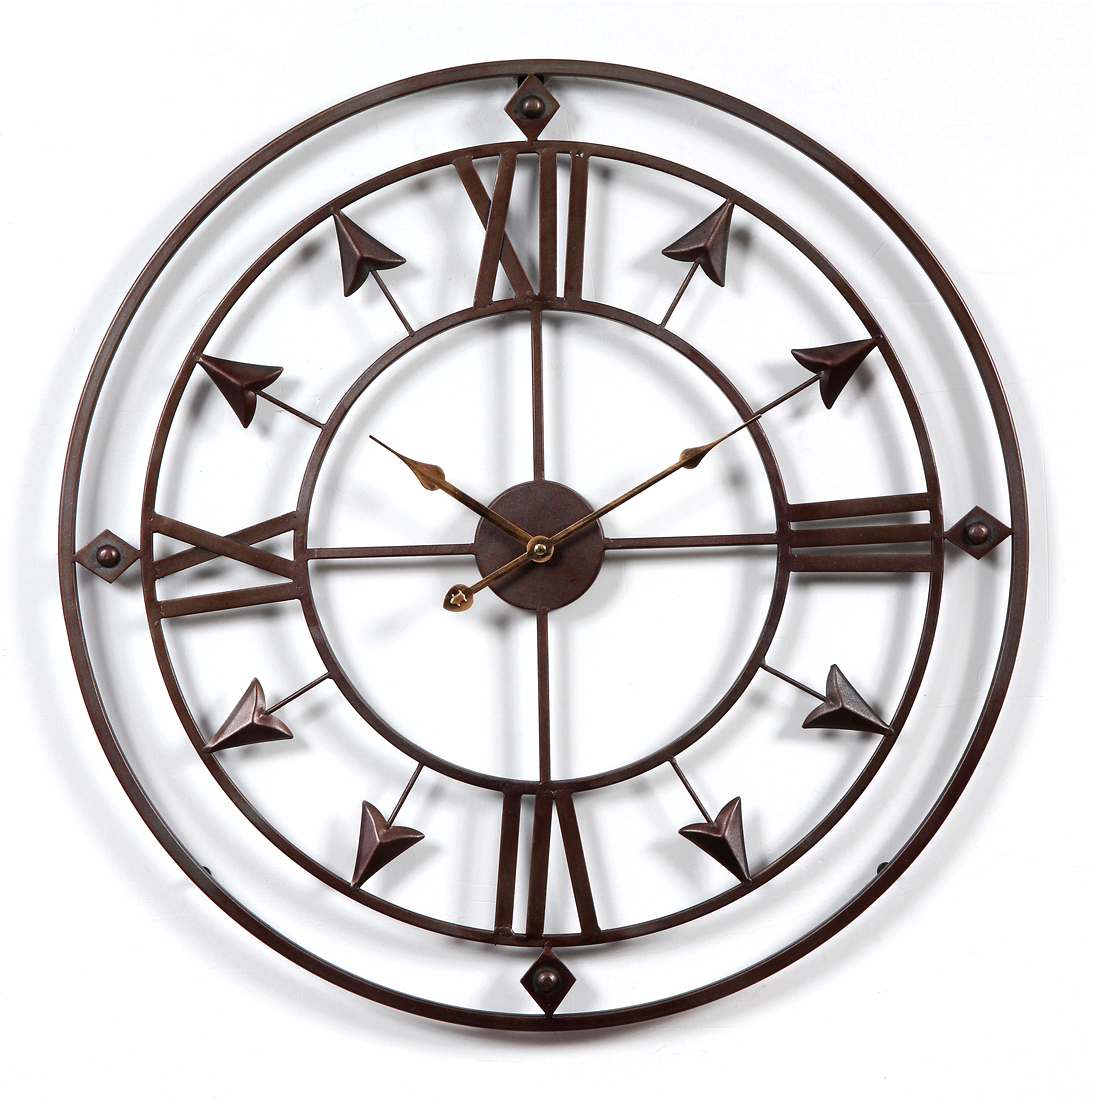 60cm24 inch 3D large wall clock vintage Vintage Style hollow out Household Bedroom Art Clocks Livingroom Wall home Decor 2020|Wall Clocks| |  - title=